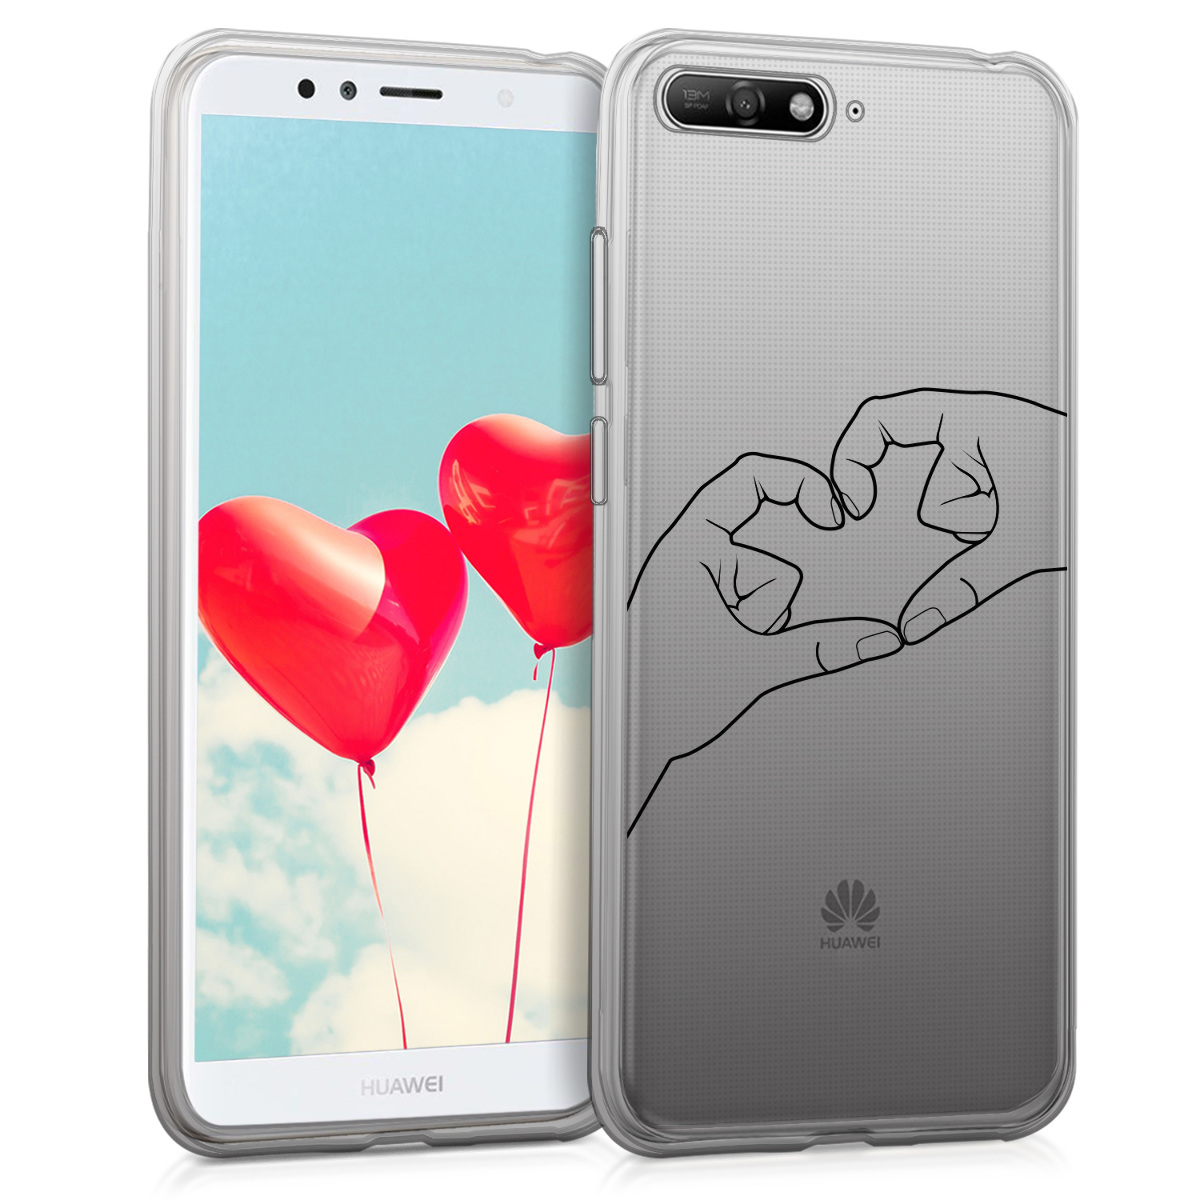 KW Θήκη Σιλικόνης TPU Huawei Y6 (2018) - Crystal Clear  - Black / Transparent (44877.18)